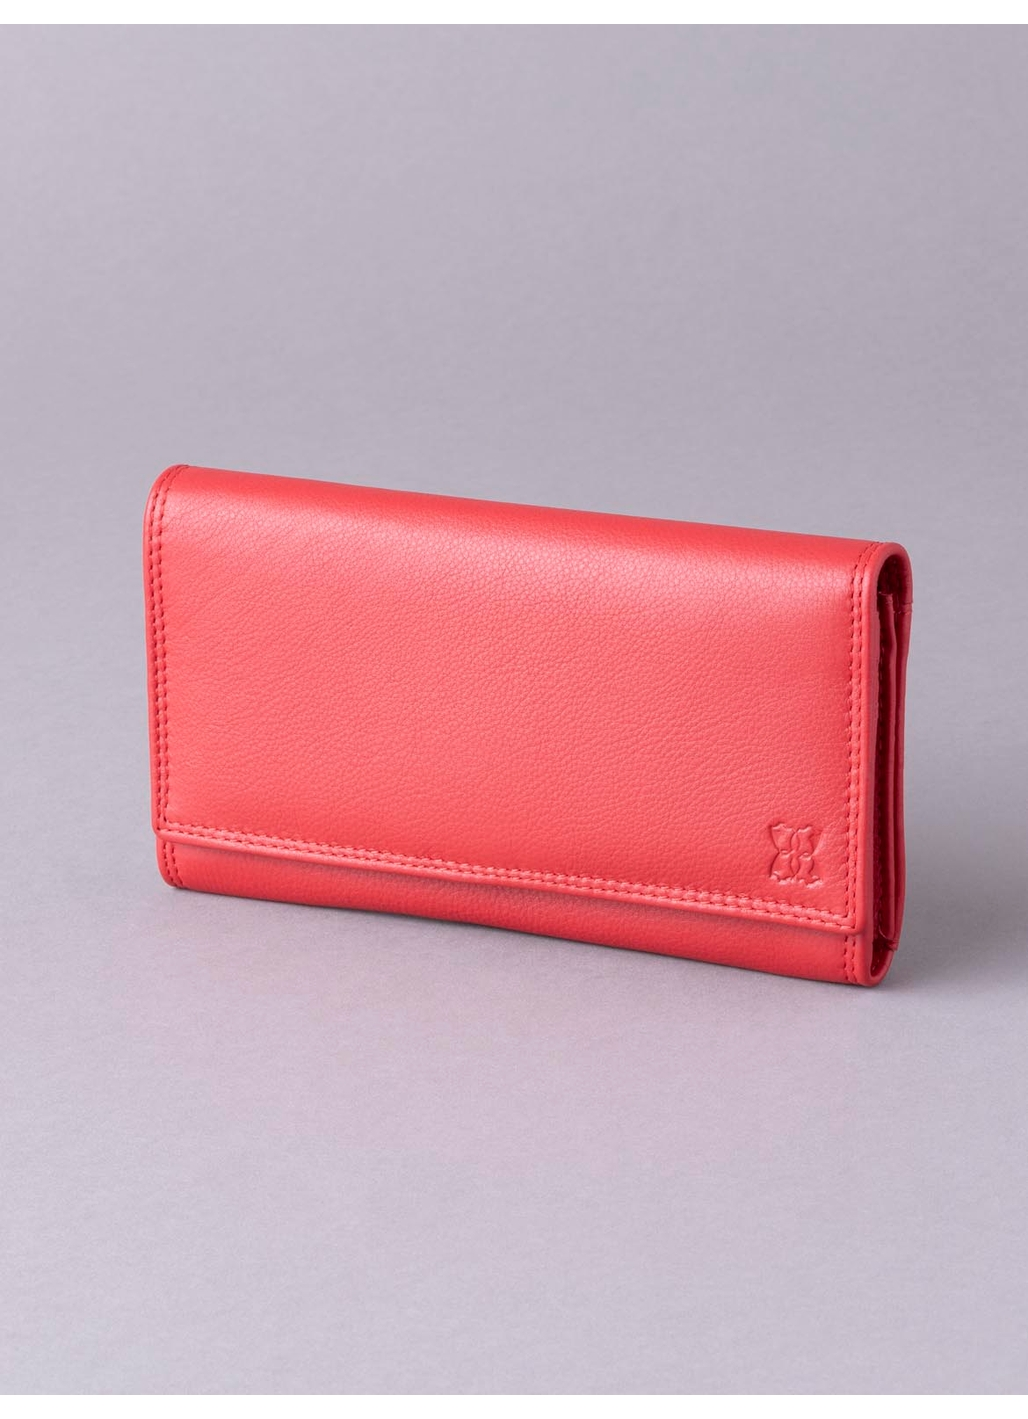 19cm Leather Purse in Red